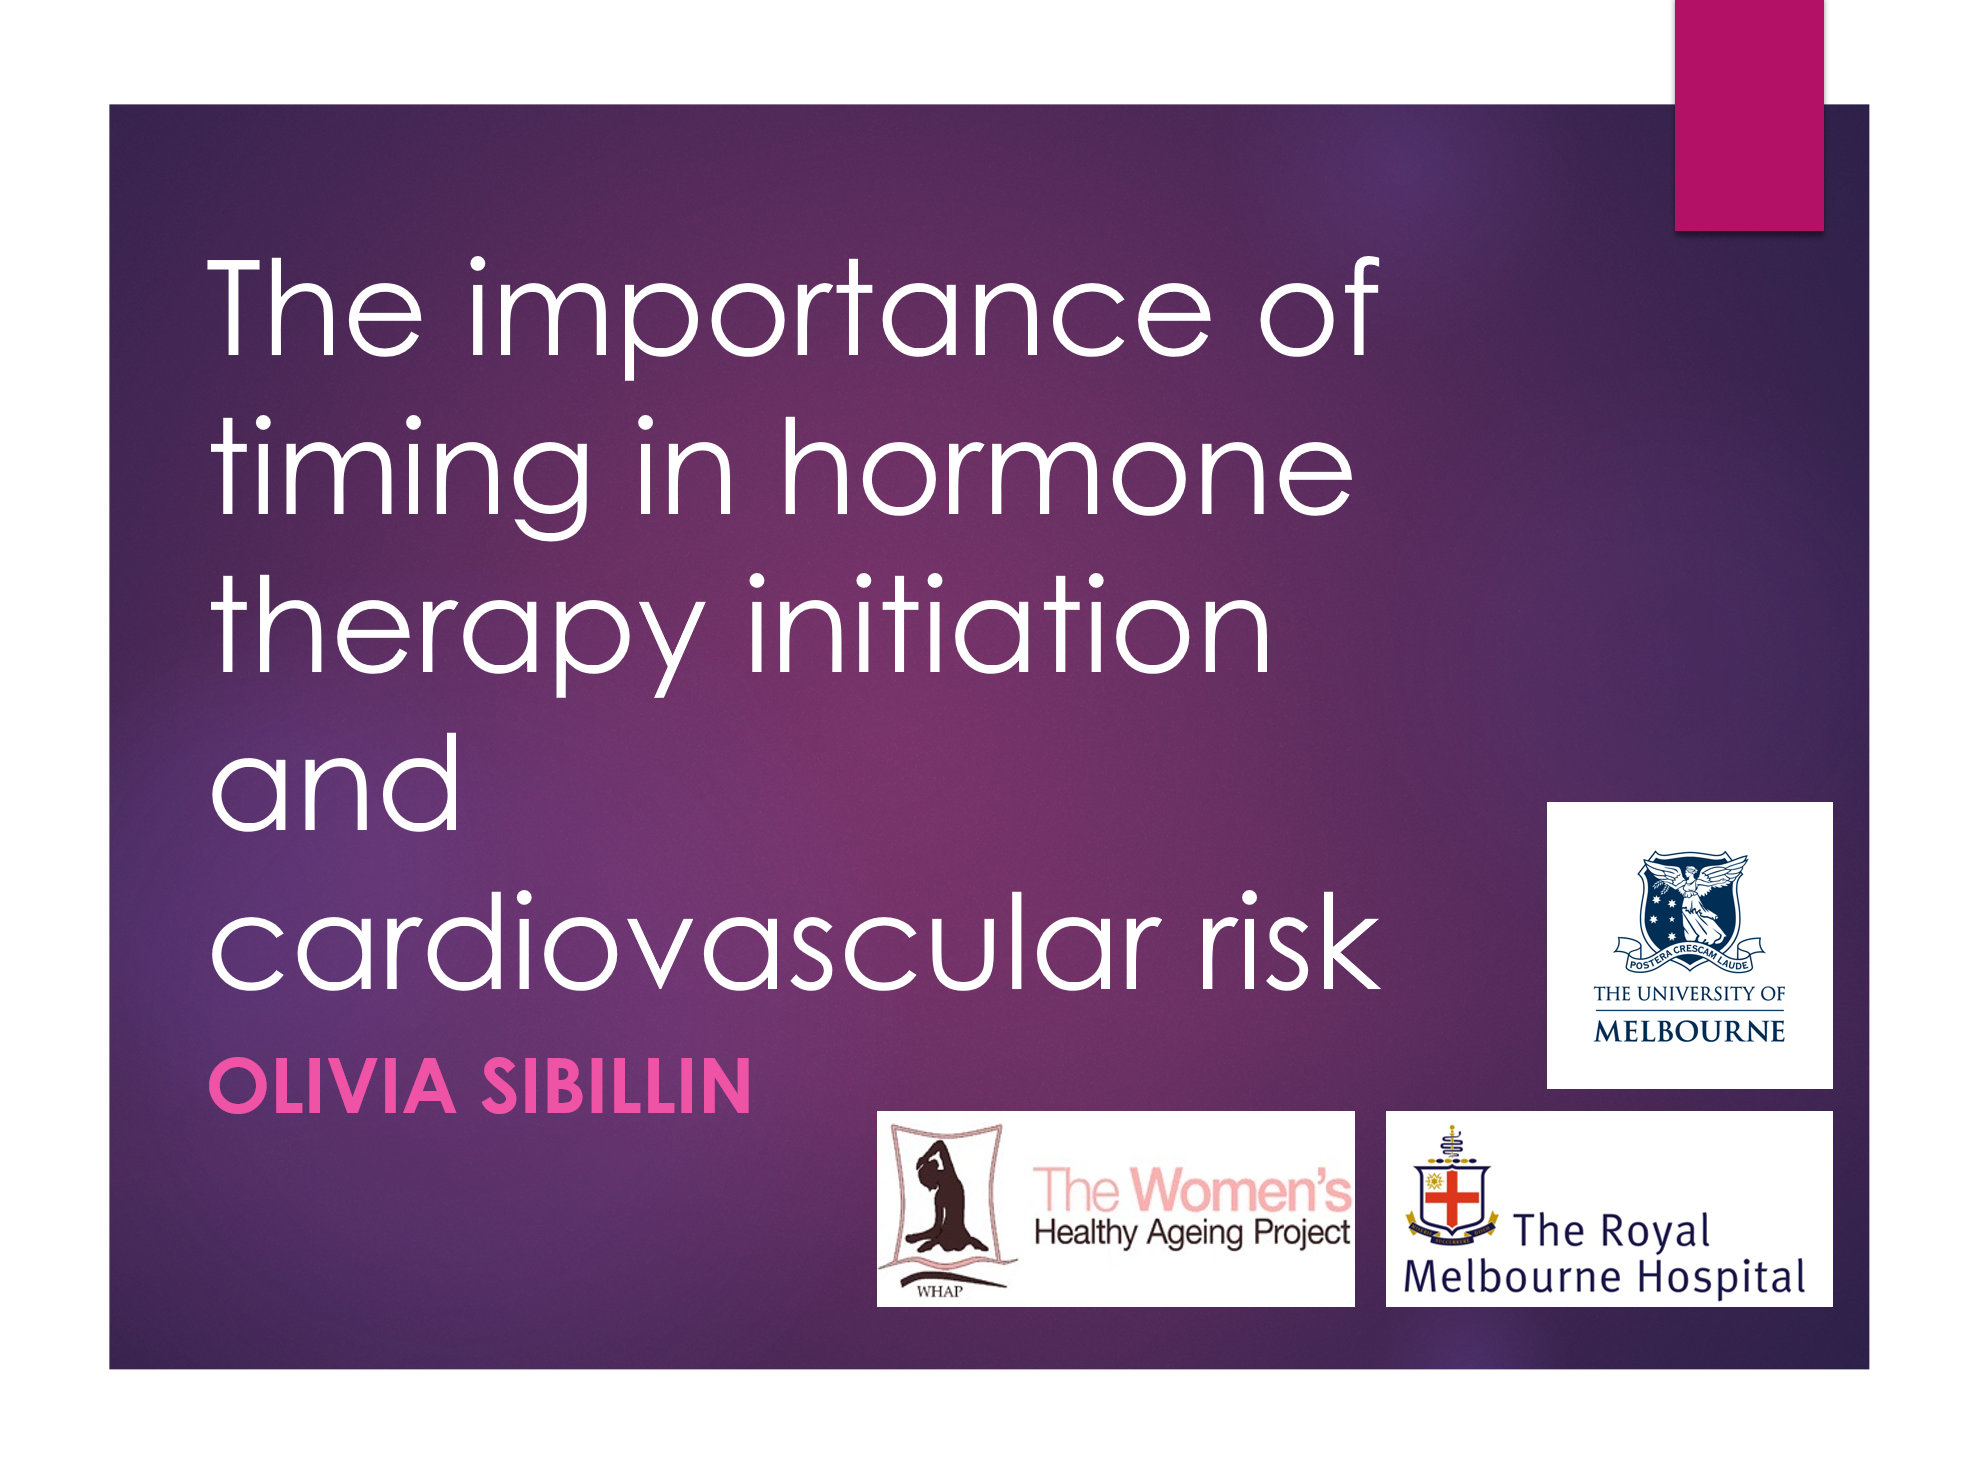 The importance of timing in hormone therapy initiation and cardiovascular risk - The use of Hormone Replacement Therapy (HRT) in older women has been associated with increased risk of coronary heart disease and stroke.Risk may be ameliorated by timing of initiating and length of exposure to HRT, yet evidence remains equivocal. The aim of this study was to observe whether use of and length of exposure to HRT elevates cardiovascular risk (CVR) in older, post-menopausal Australian women. The results found that current HRT use was associated with a significantly increased CVR.No differences in CVR were observed with ever or past use of HRT.Continuous length of HRT exposure was associated with a significant increase in CVR.Age and the length of exposure to HRT may be the driving force behind an increase CVR with the use of HRT.Citation: Sibillin, O., et al. (2017).The importance of timing in hormone therapy initiation and cardiovascular risk. Paper presented at the 21st Annual congress of the Australasian Menopause Society, Sydney, Australia, 13-15 October.